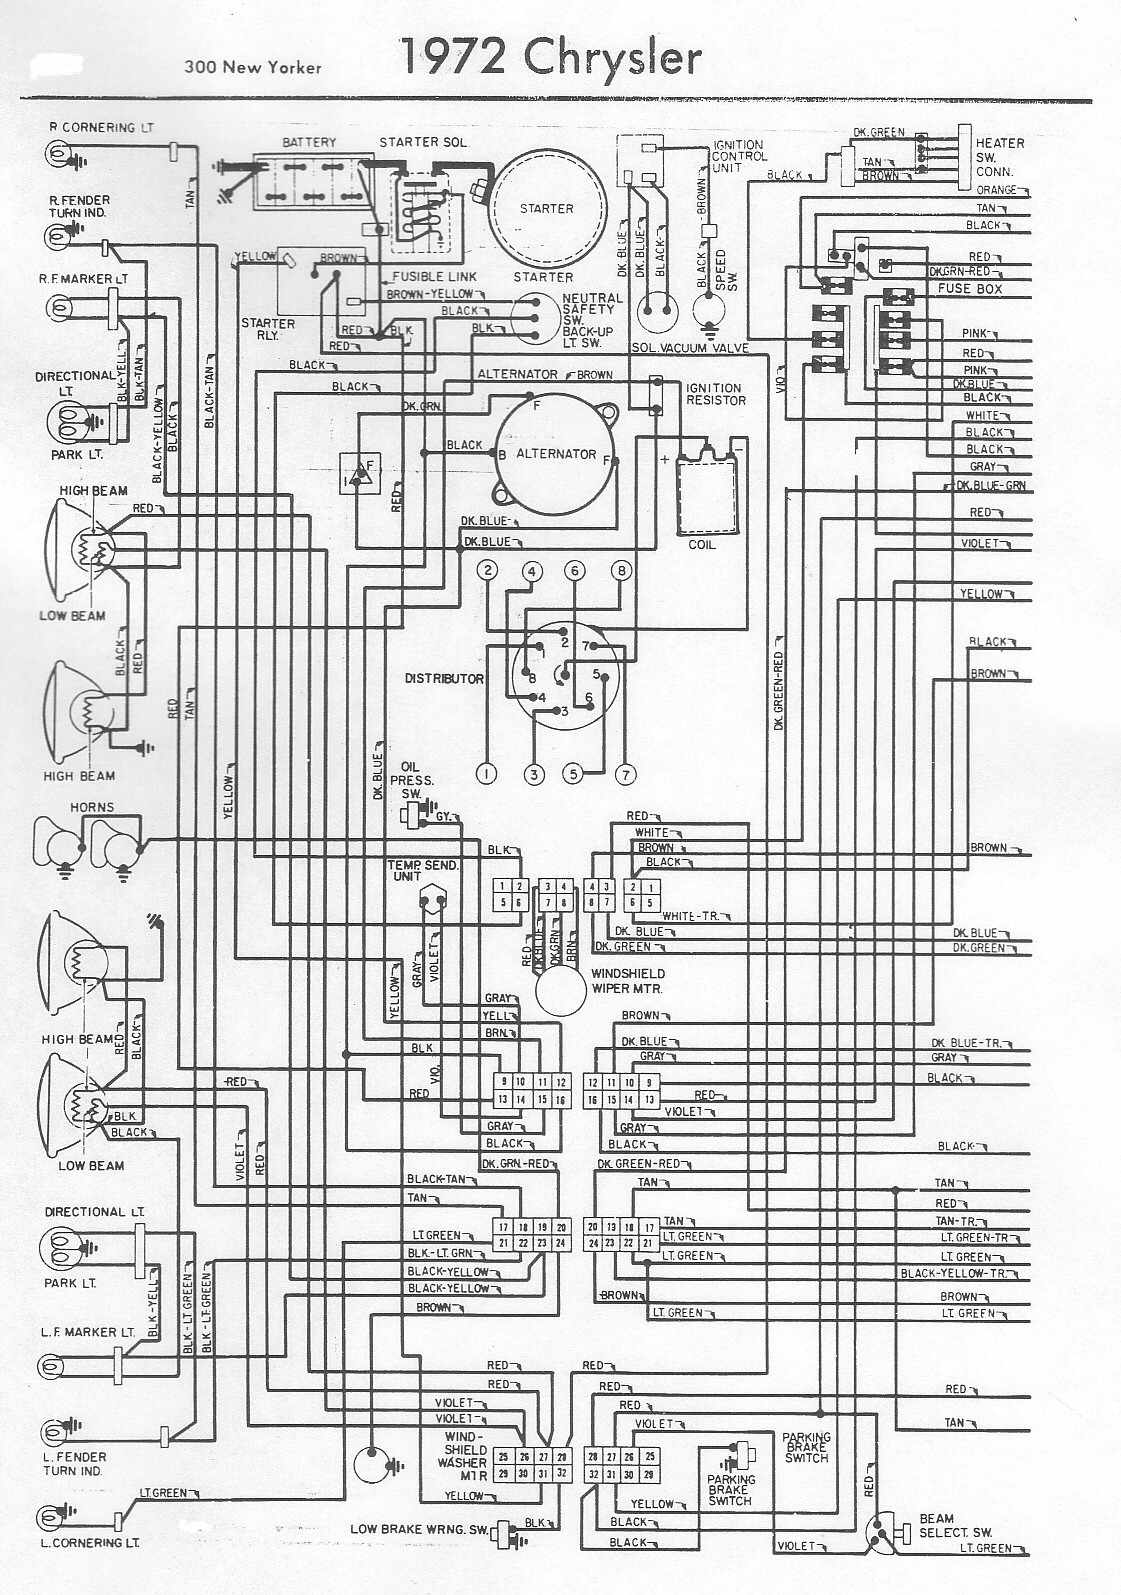 Chrysler Car Manuals Wiring Diagrams Pdf Fault Codes Electrical And Diagram Download